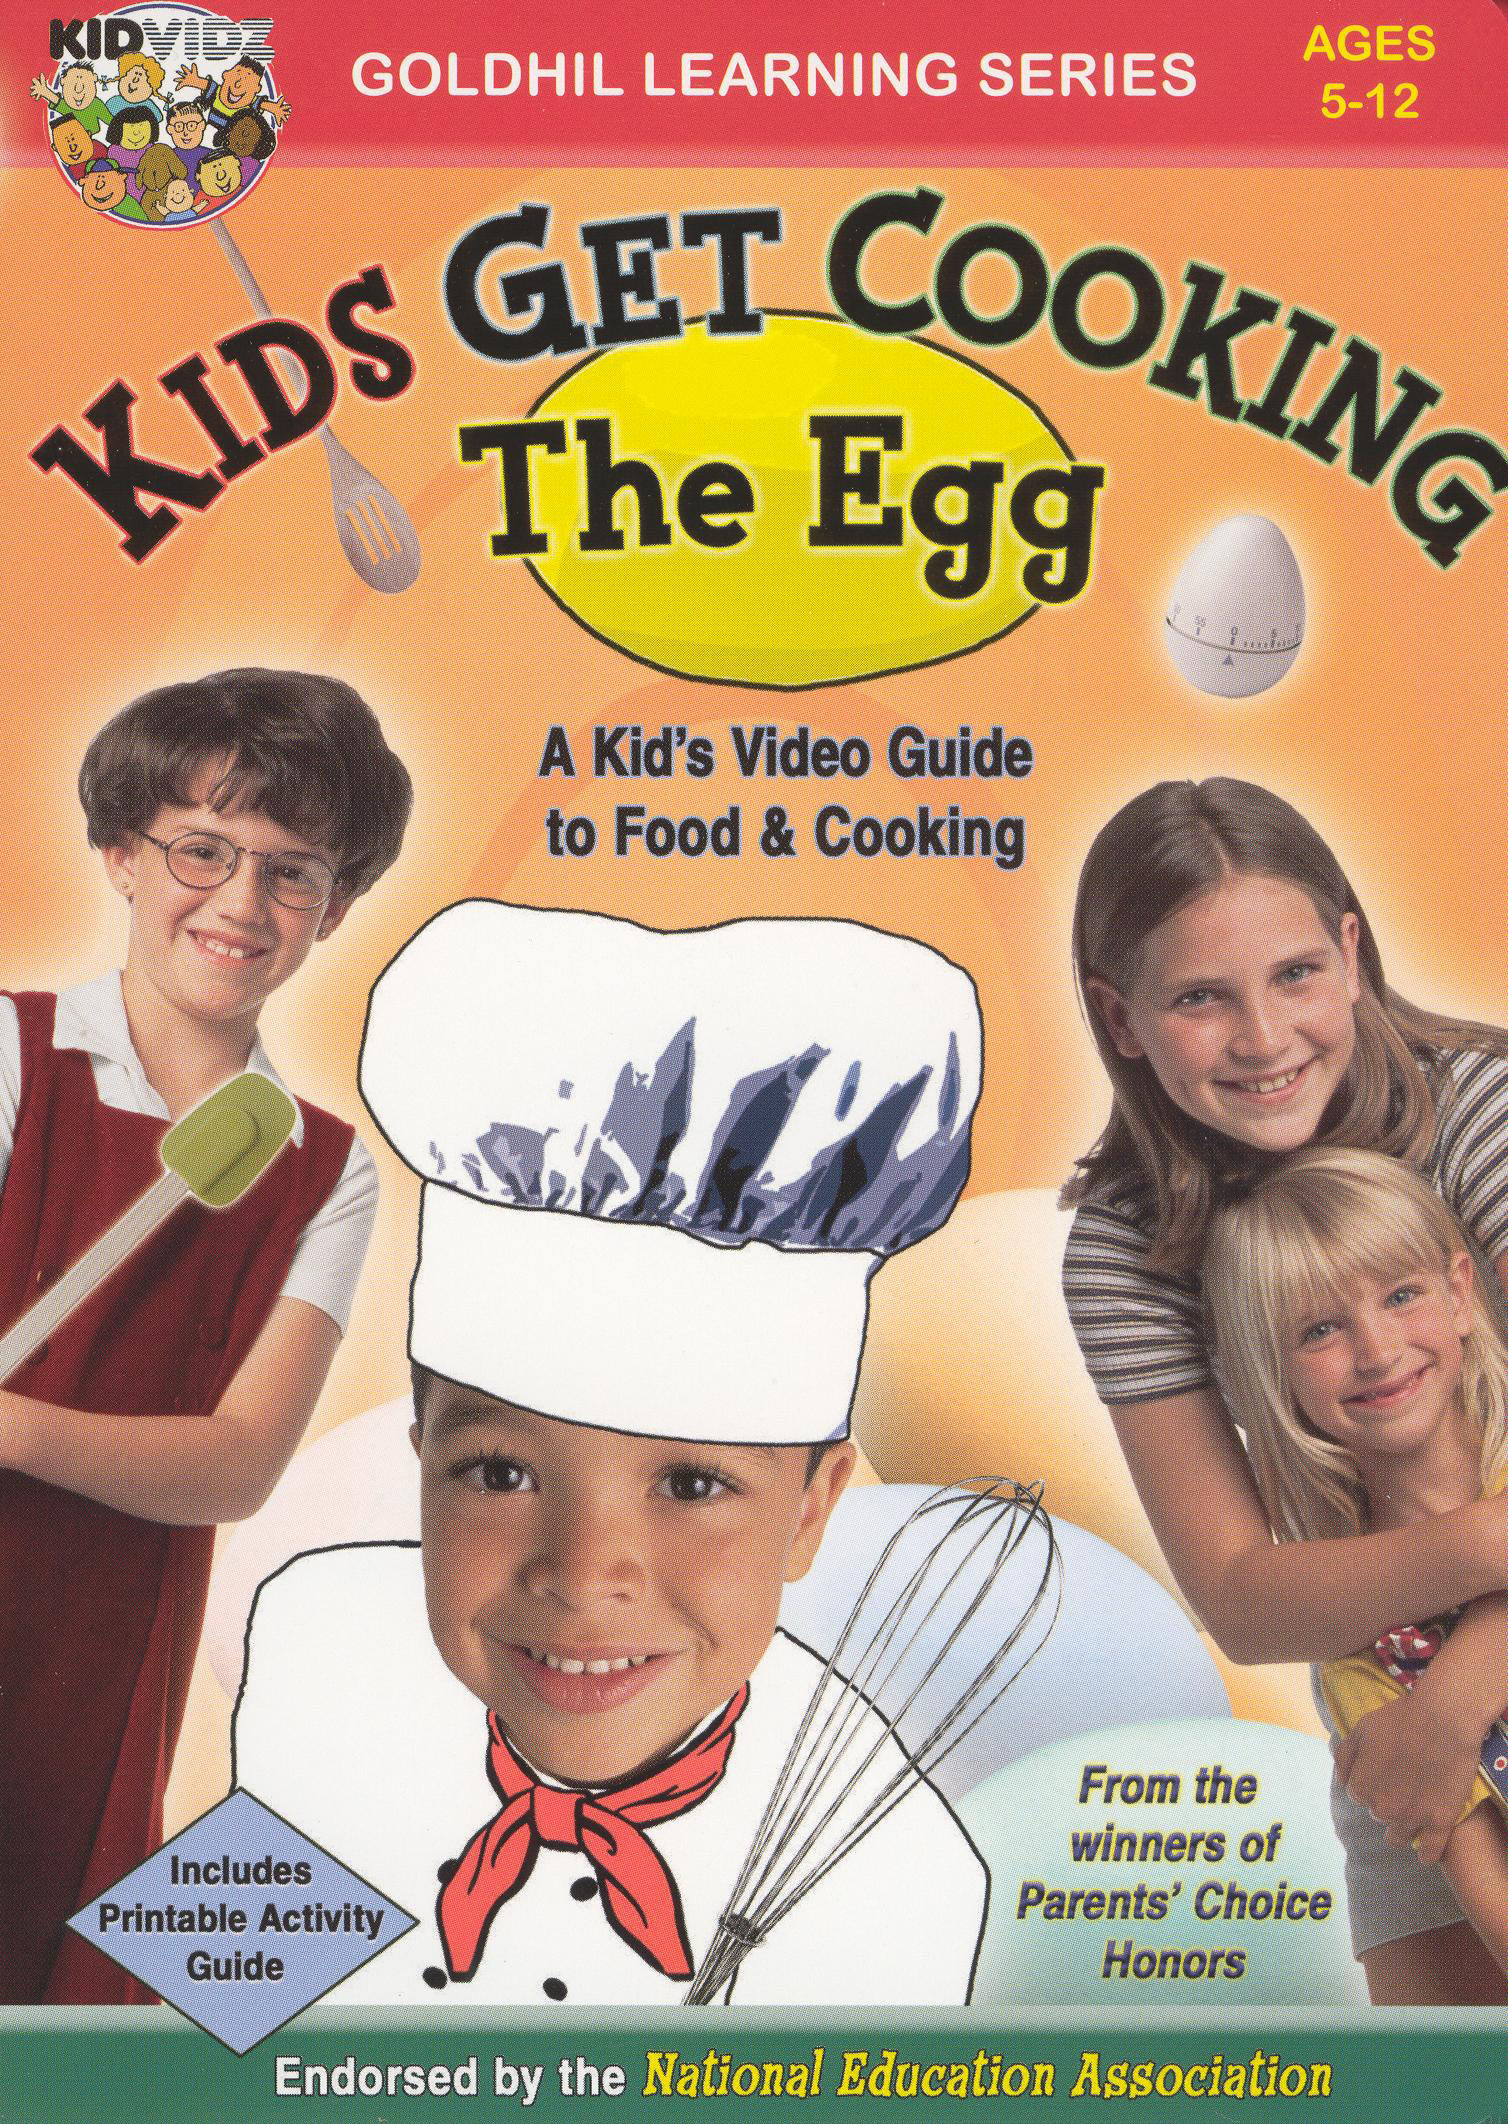 Kids Get Cooking: The Egg